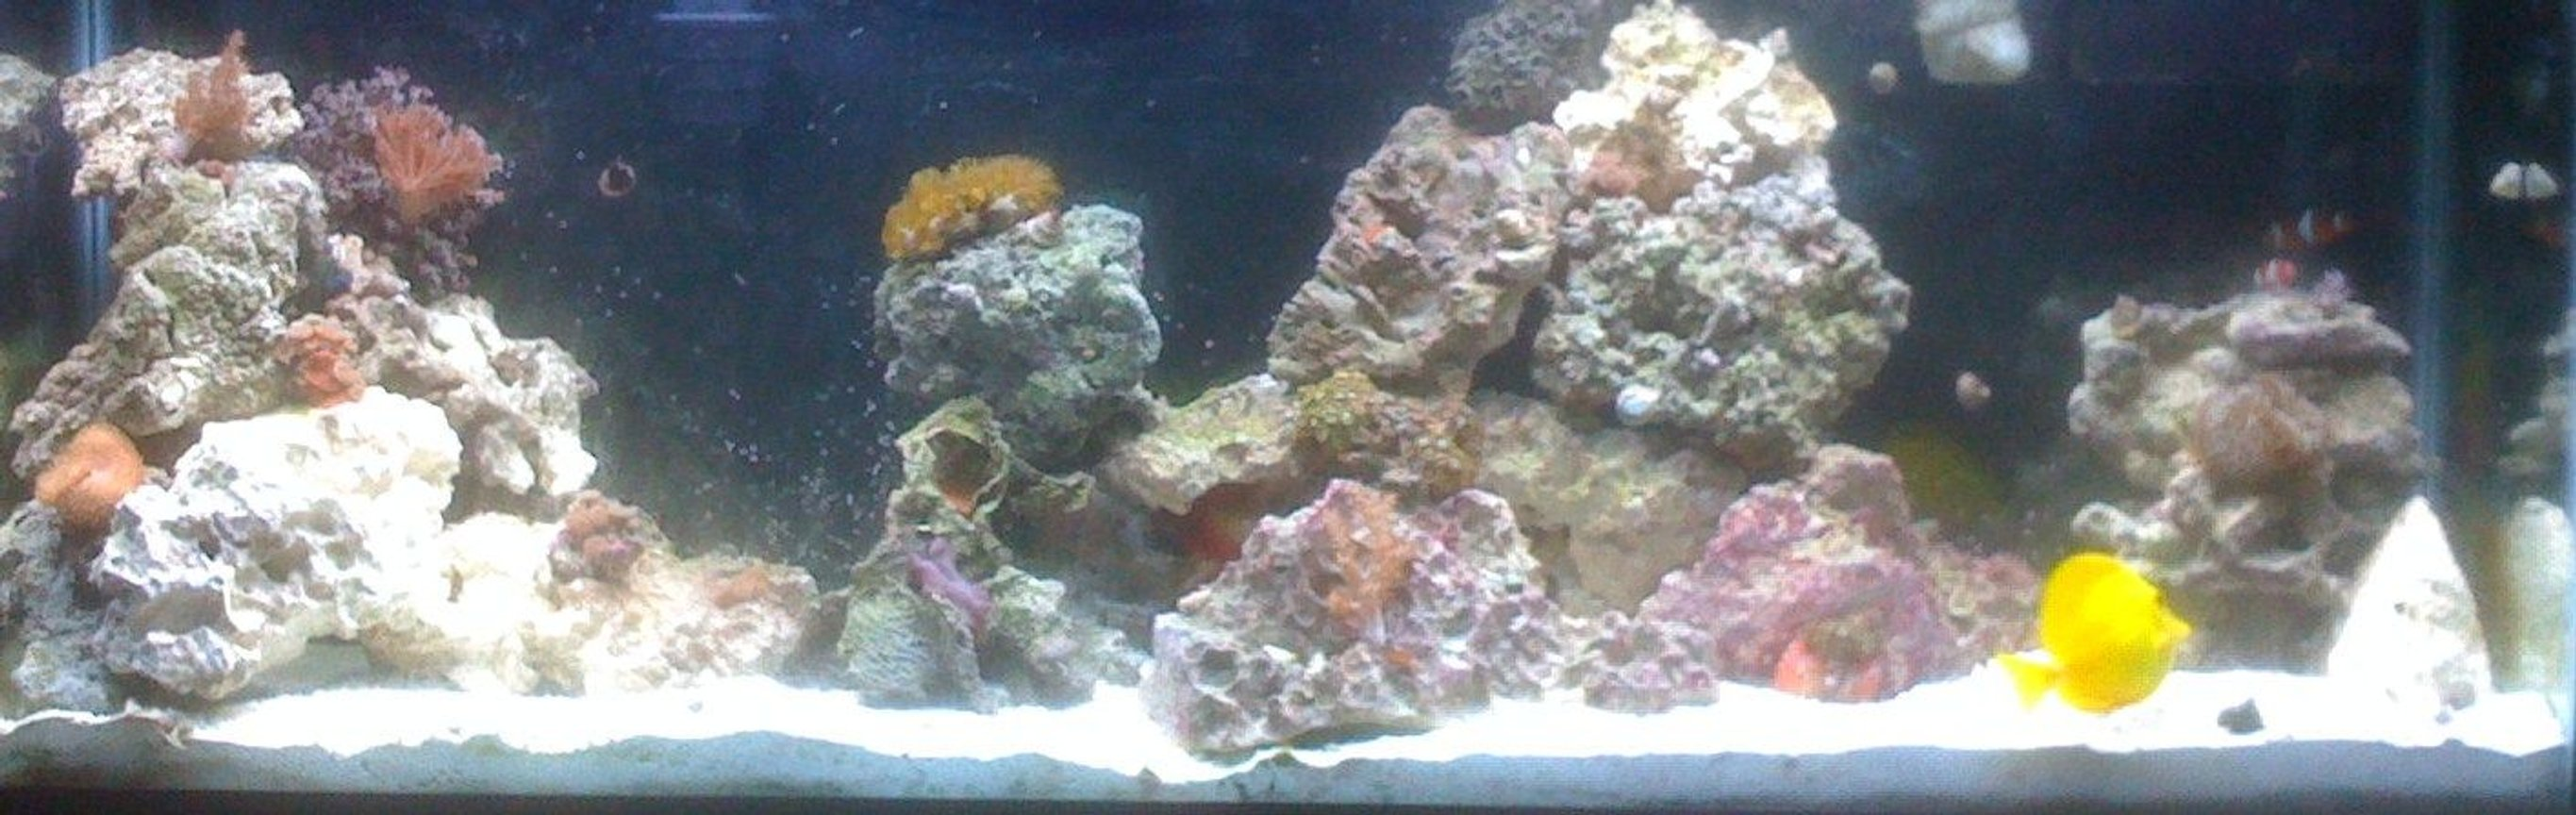 saltwater fish - zebrasoma flavescens - yellow tang - hawaii stocking in 55 gallons tank - other view